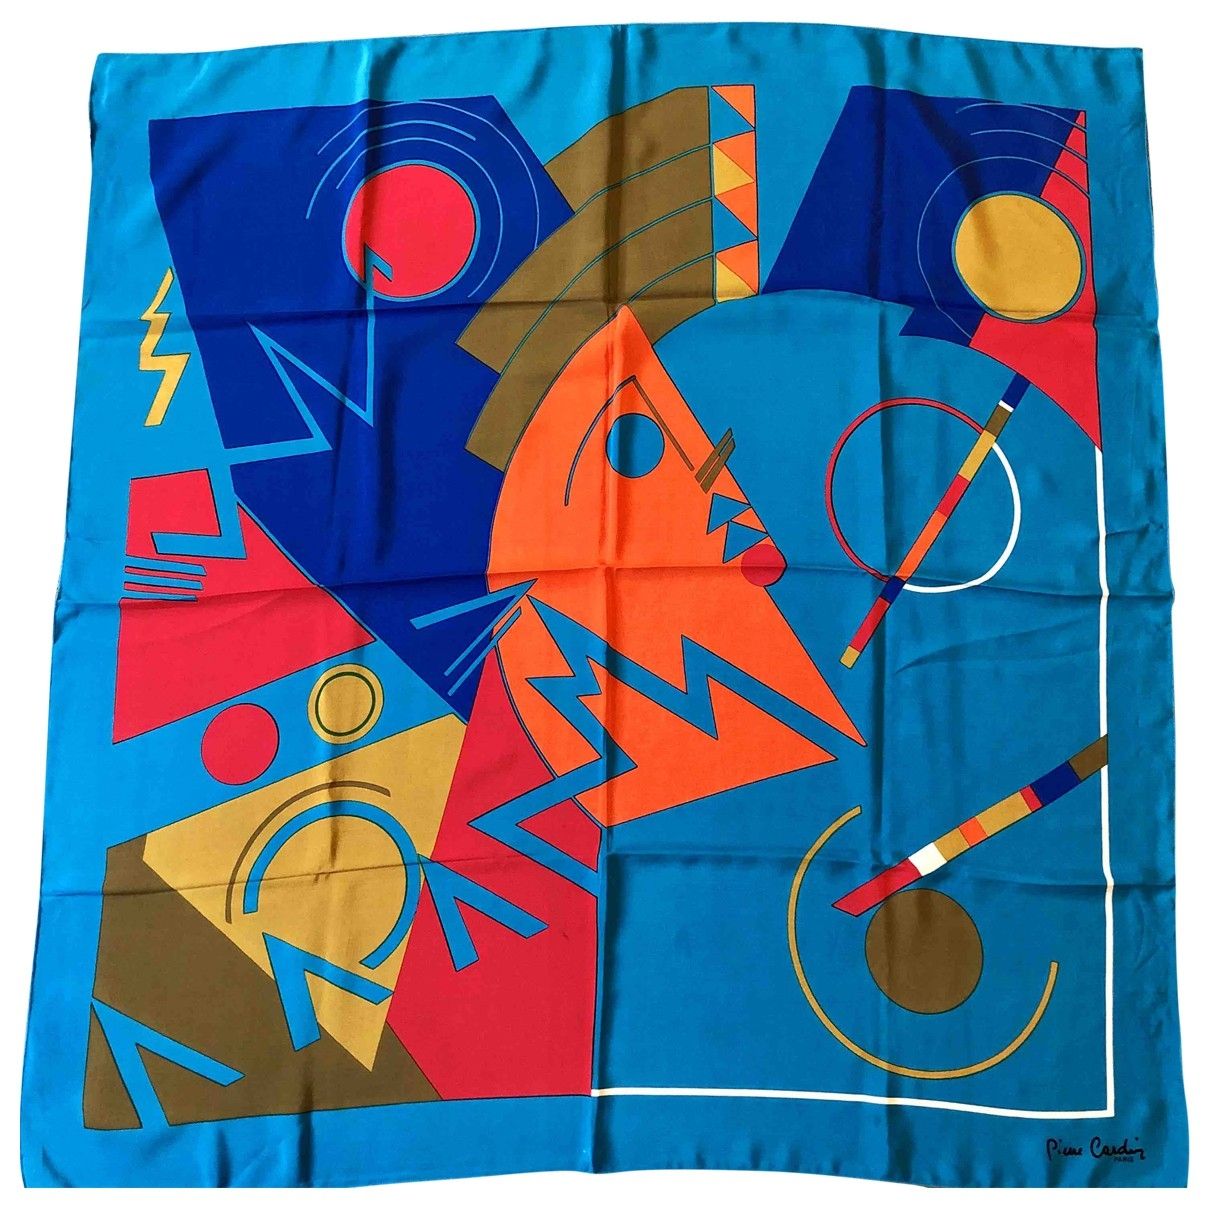 Pierre Cardin \N Silk scarf for Women \N